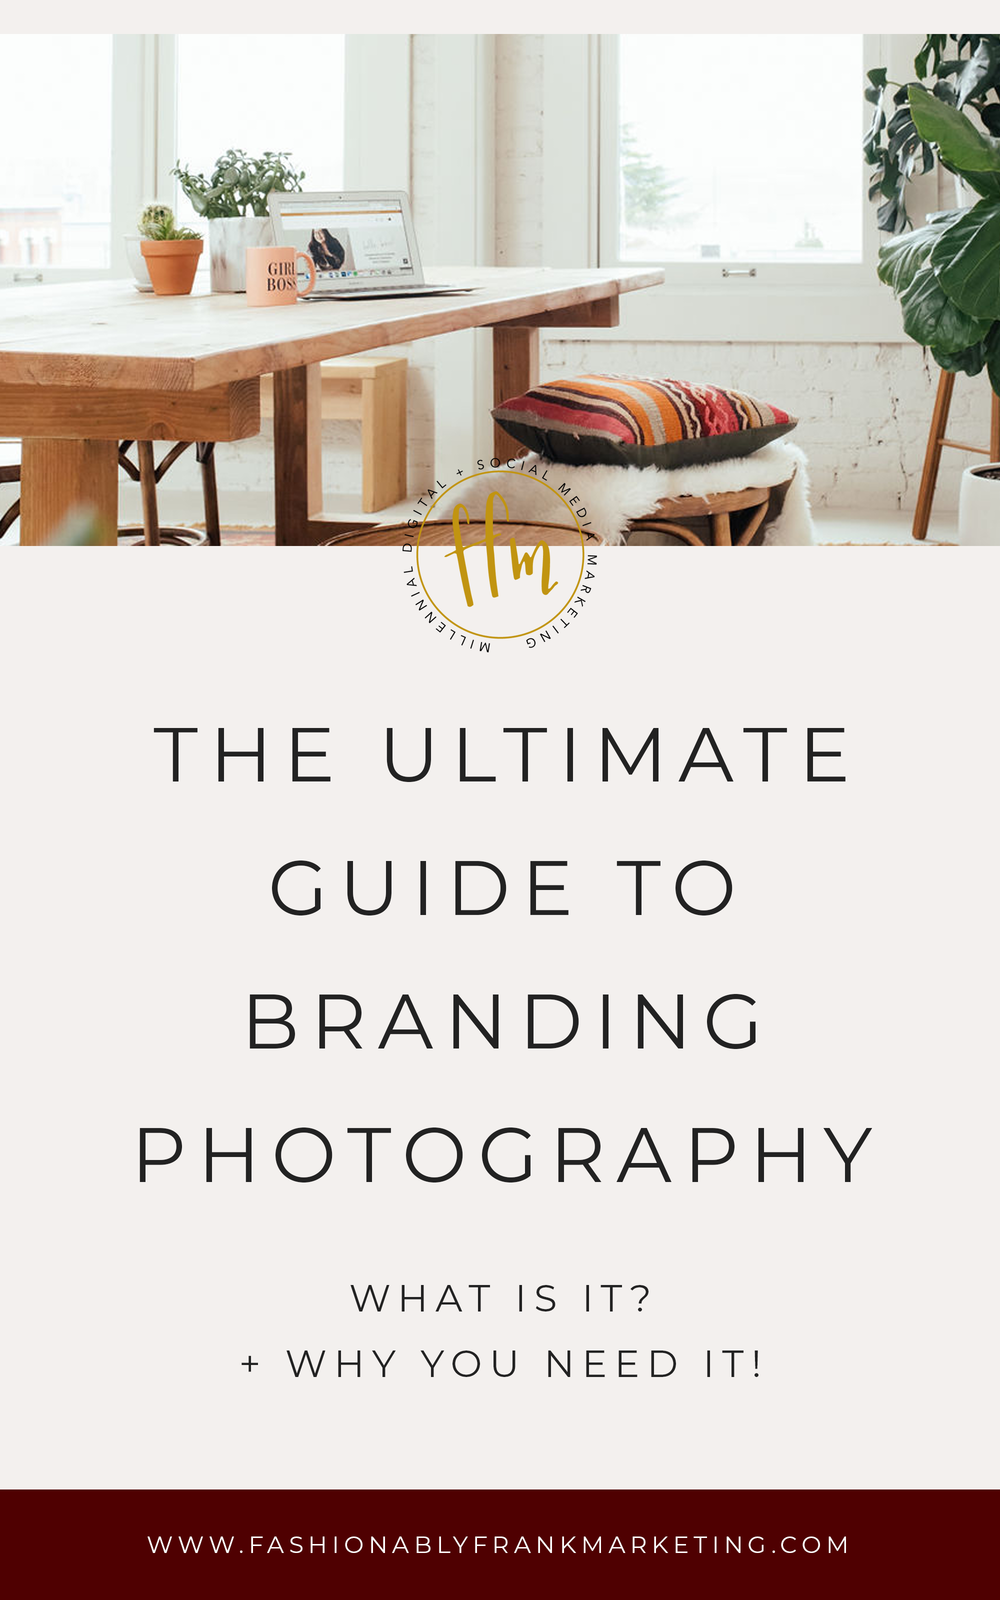 Guide to Branding Photography